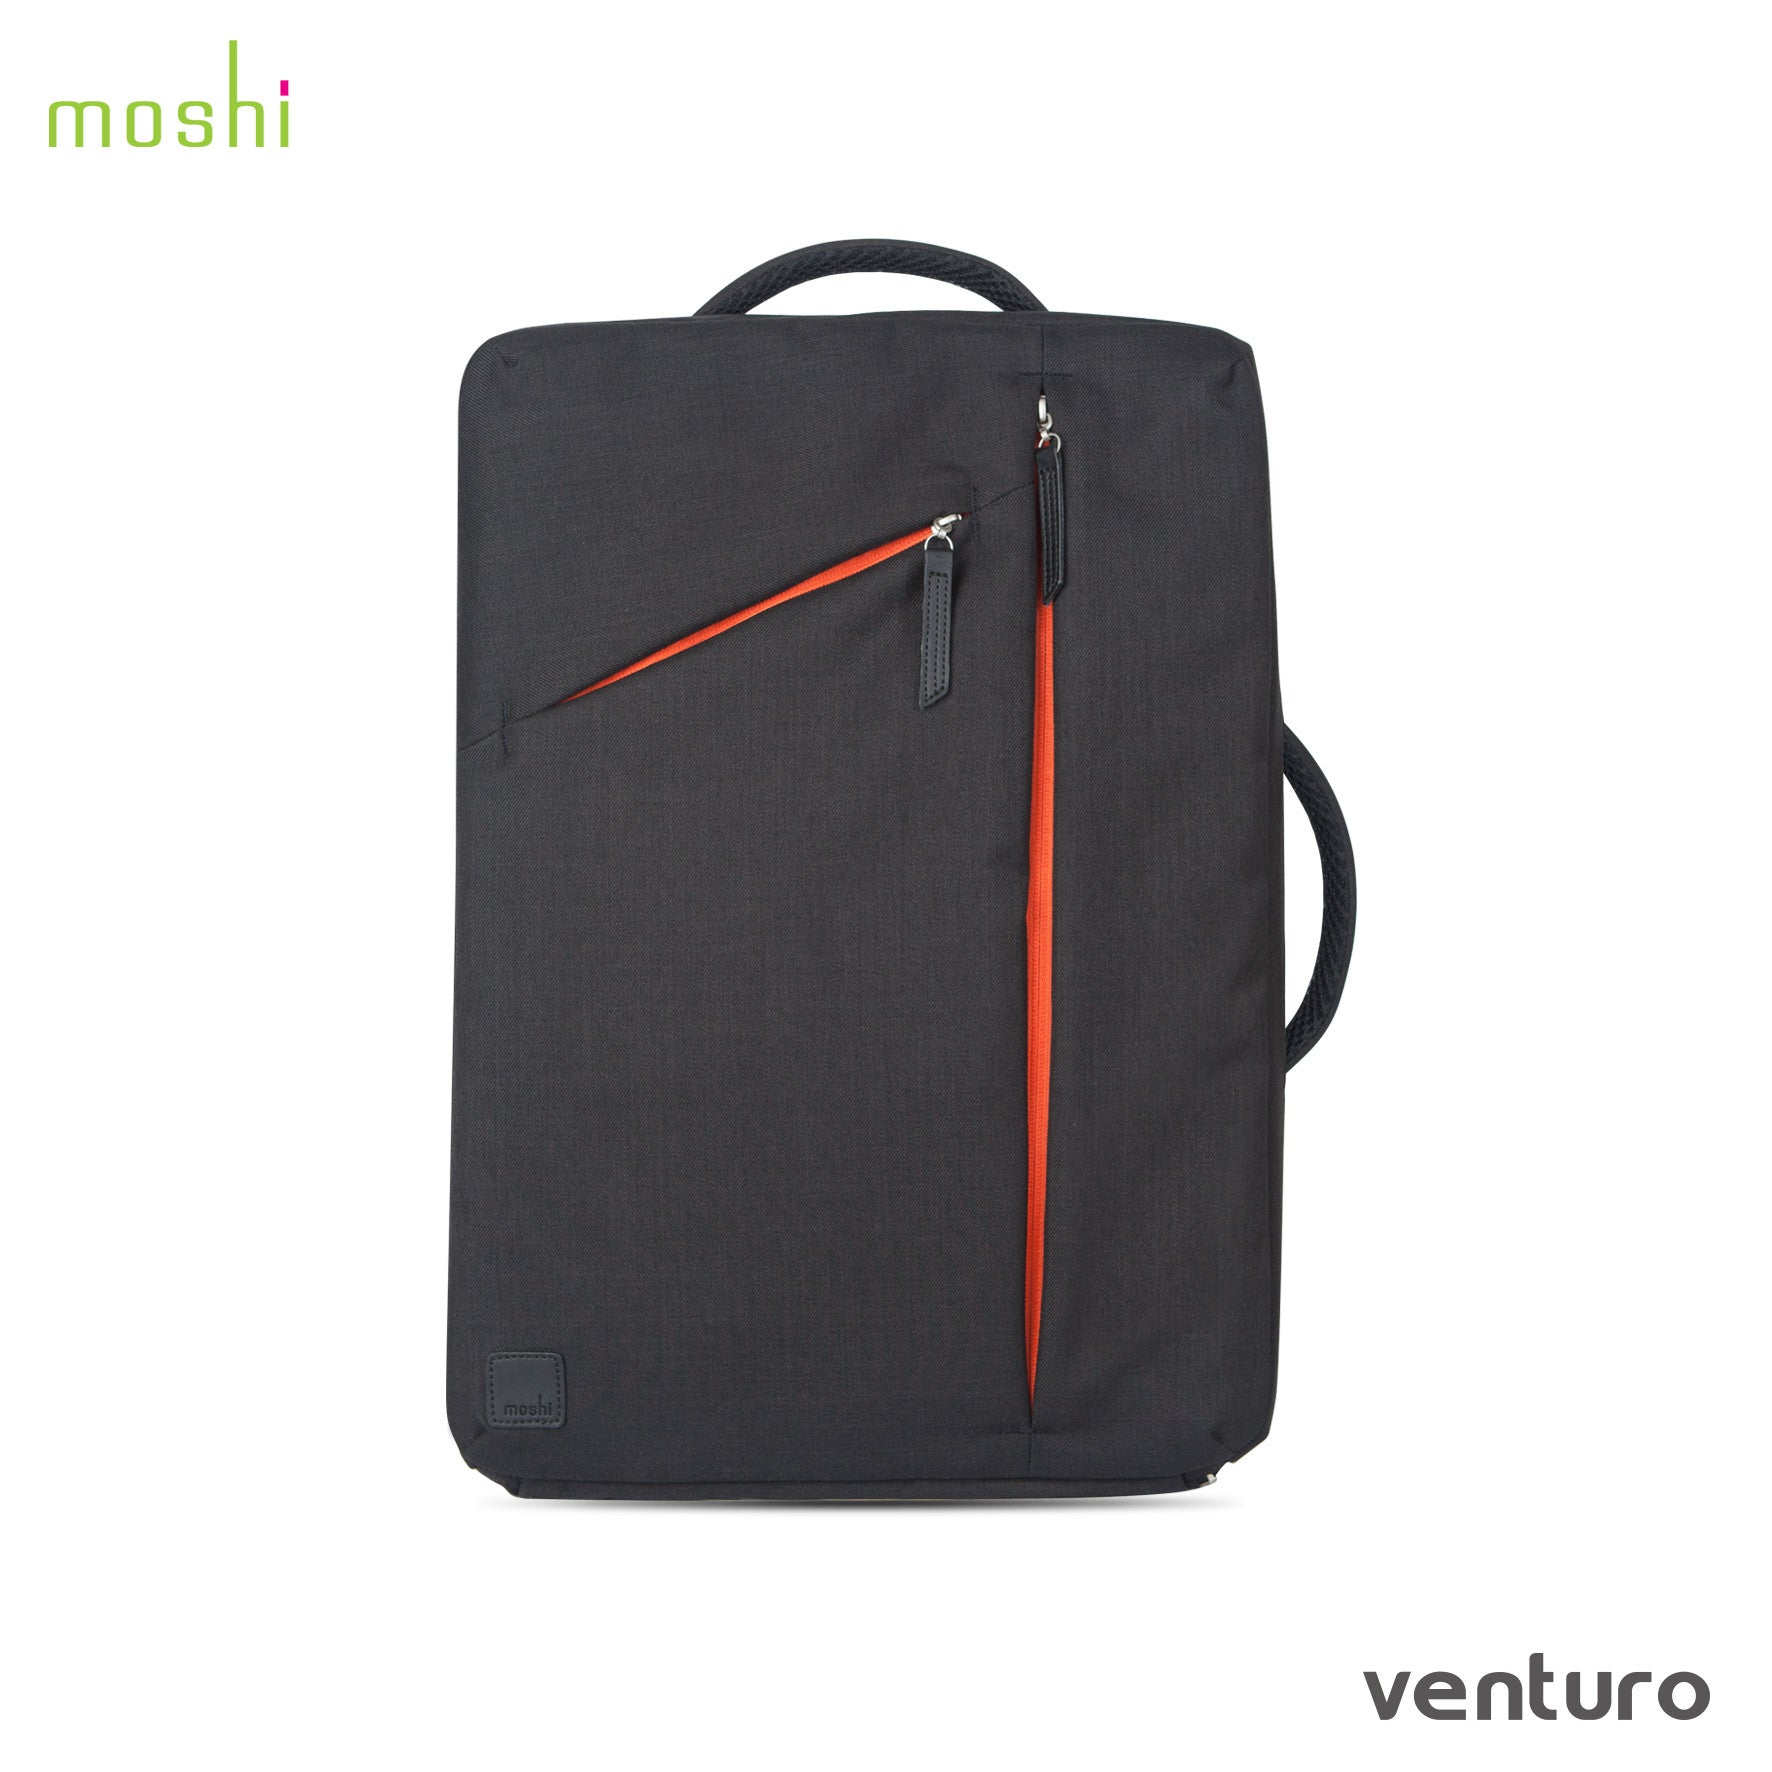 Venturo (Soft)  Laptop Case, Accessories, Moshi, BaRRiL - BaRRiL